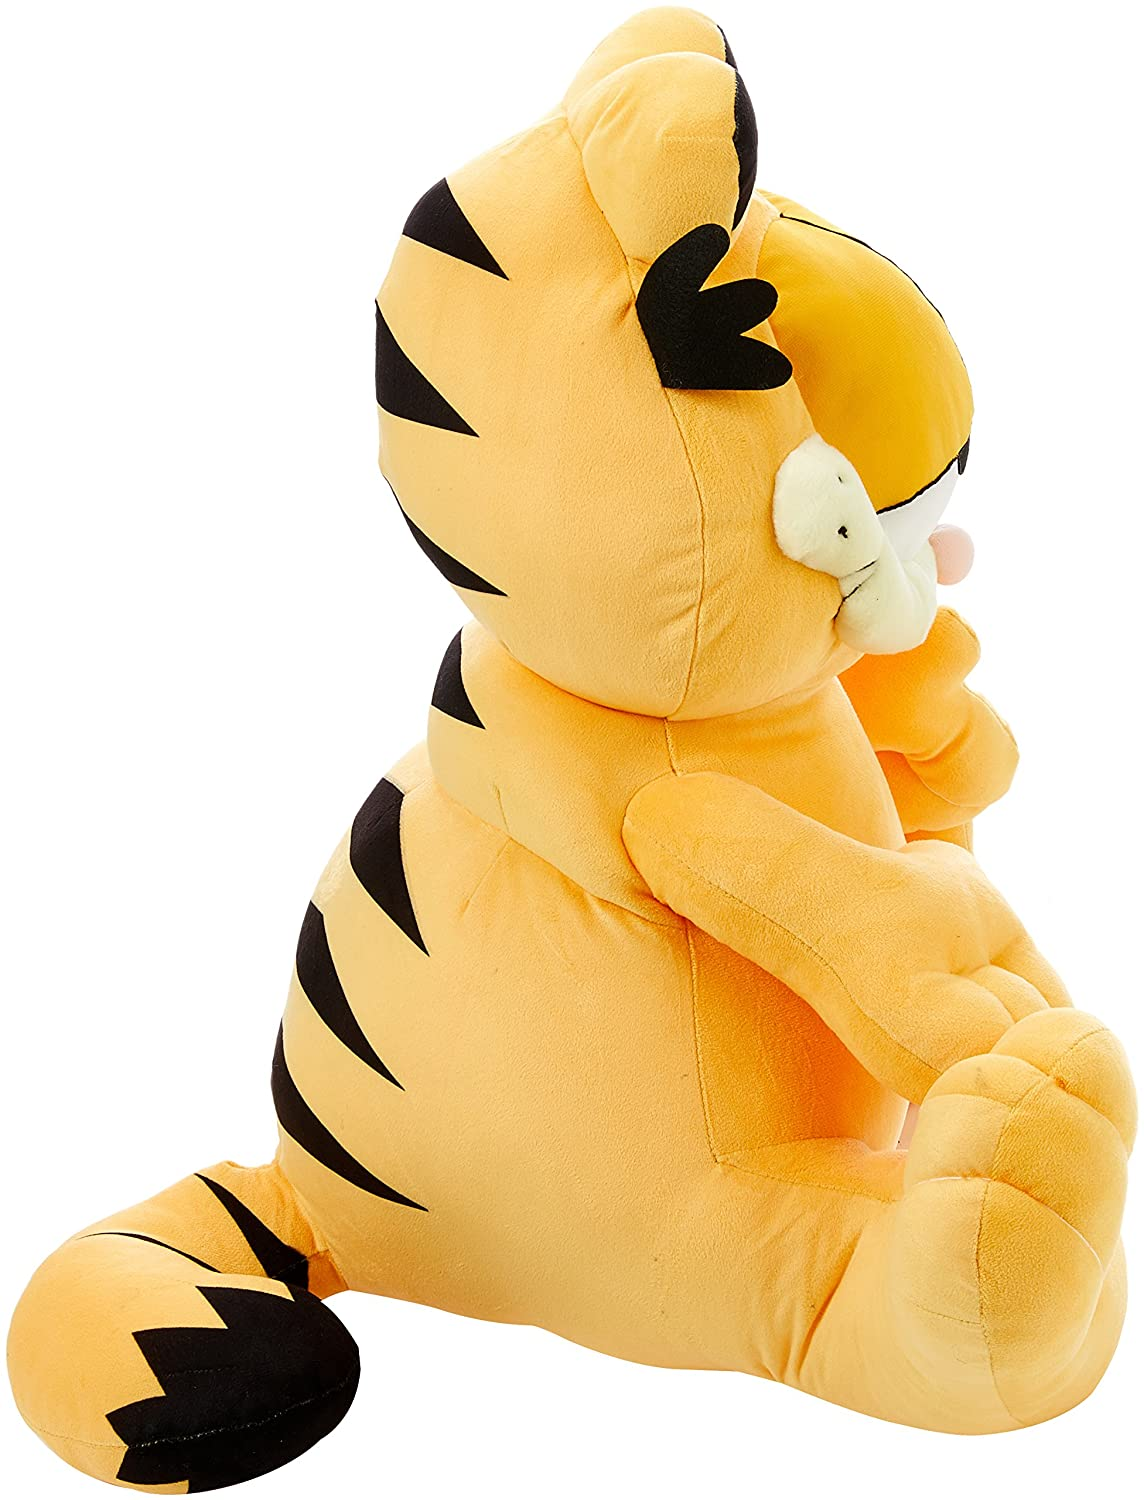 RY-9379.55.A PTS Peluche